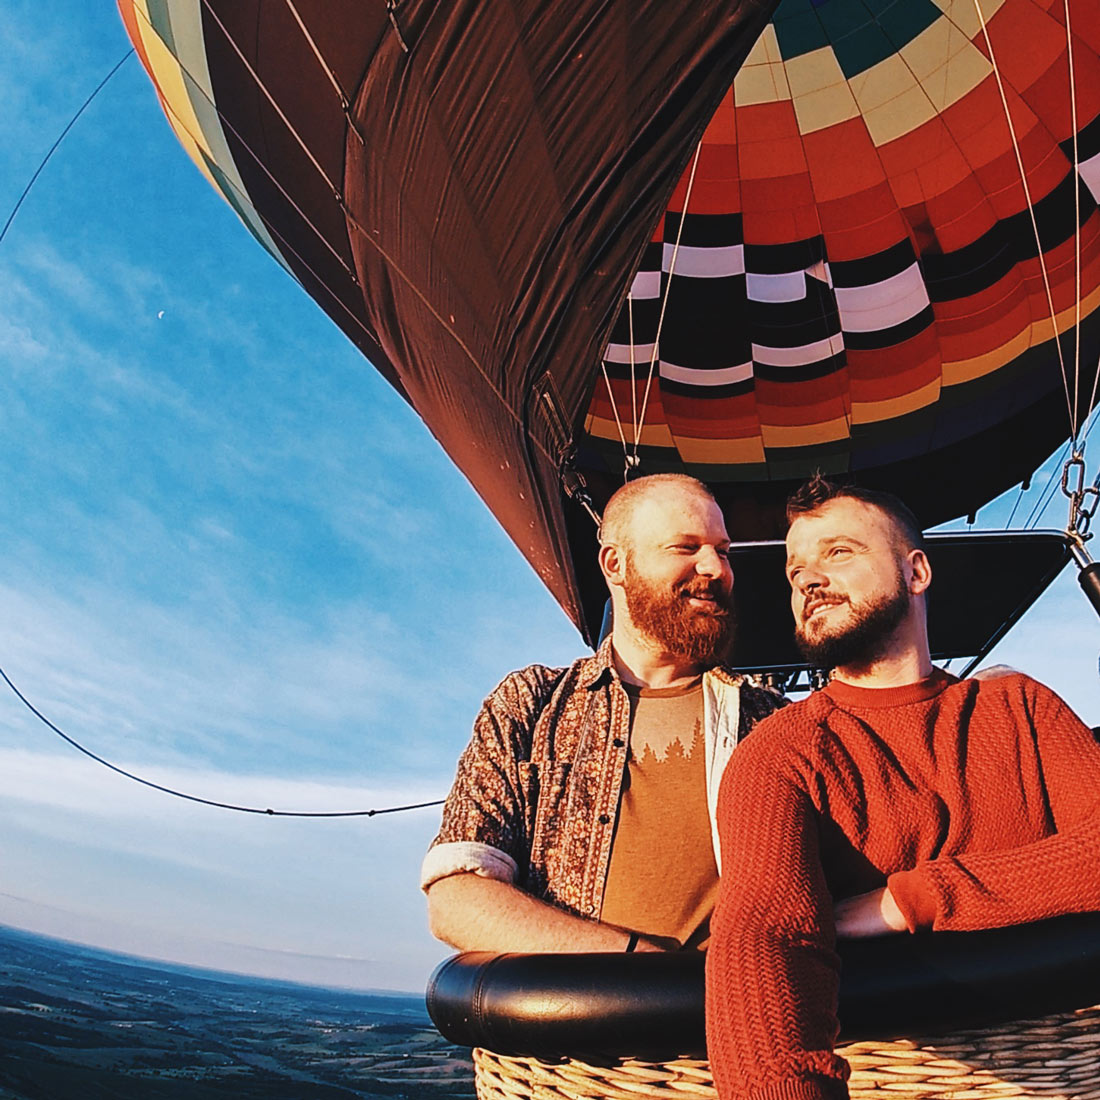 Gay Galena LGBT Getaway Illinois Galena Illinois Road Trip Galena Gay Getaway Illinois Happy Couple - Riding a Balloon from Galena on the Fly for sunrise in Galena, Illinois © Coupleofmen.com